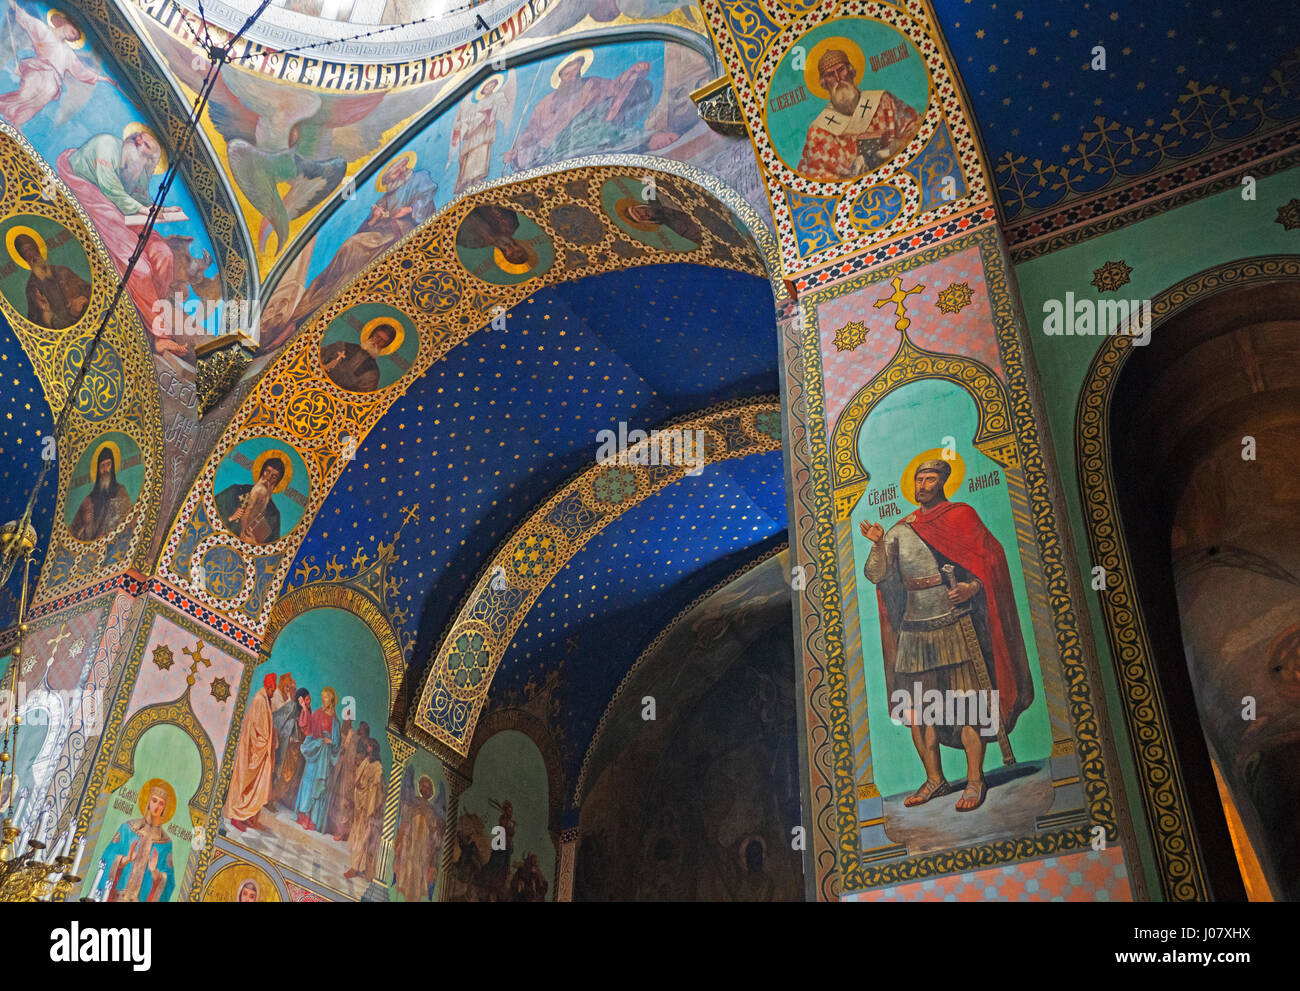 Frescoes in Sioni Cathedral of the Dormition, Georgian Orthodox church in Tbilisi. - Stock Image